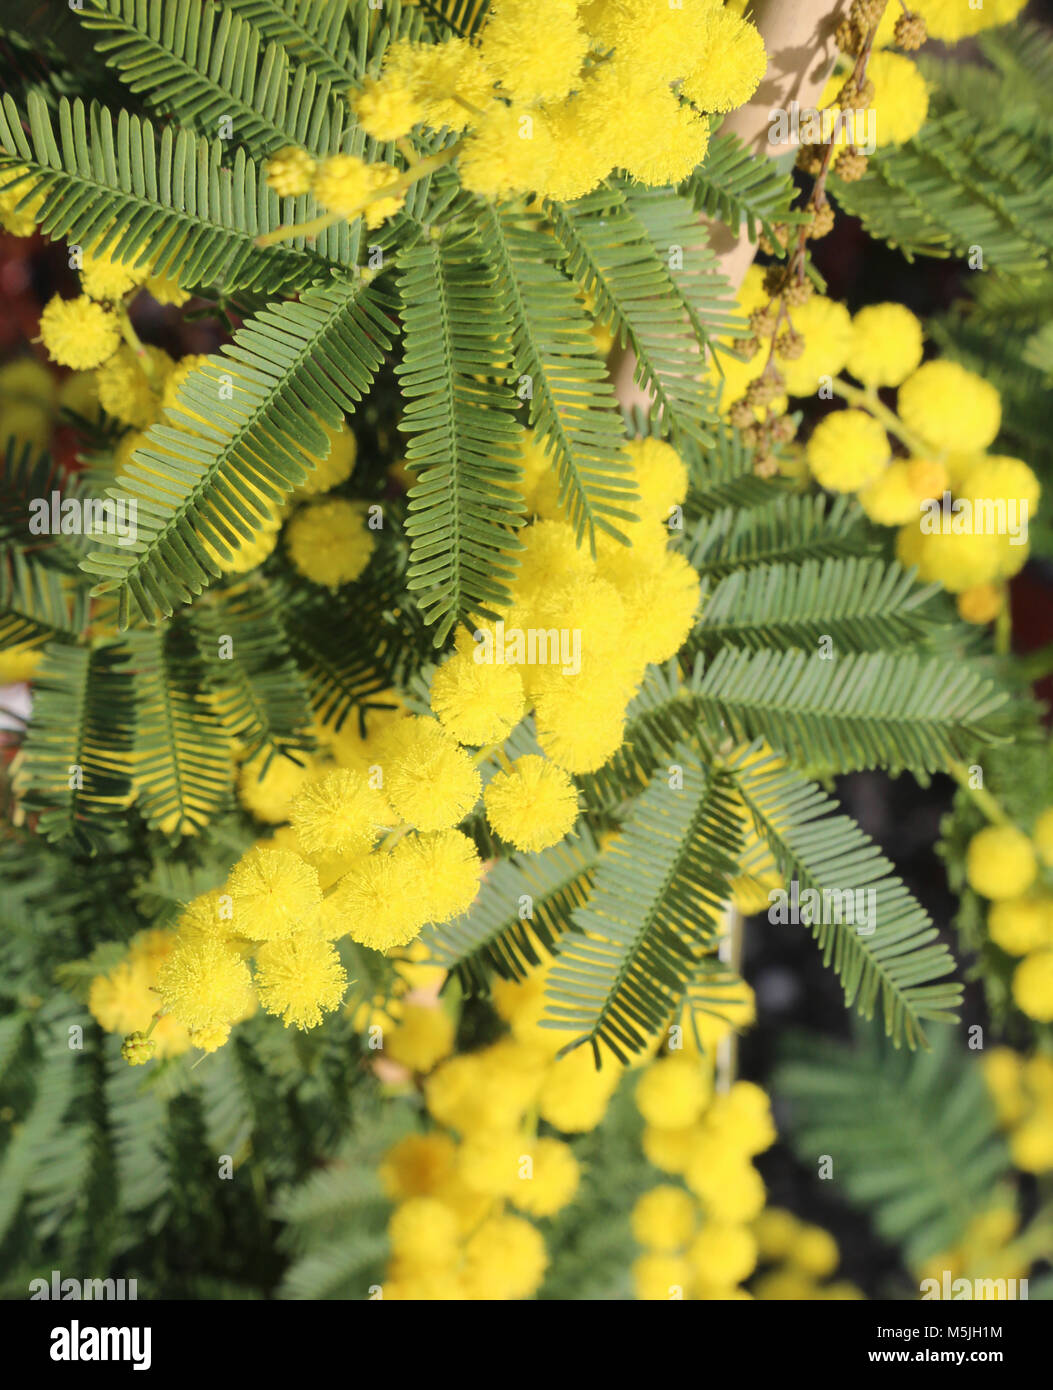 Background of yellow mimosa flowers symbol of international day of background of yellow mimosa flowers symbol of international day of women mightylinksfo